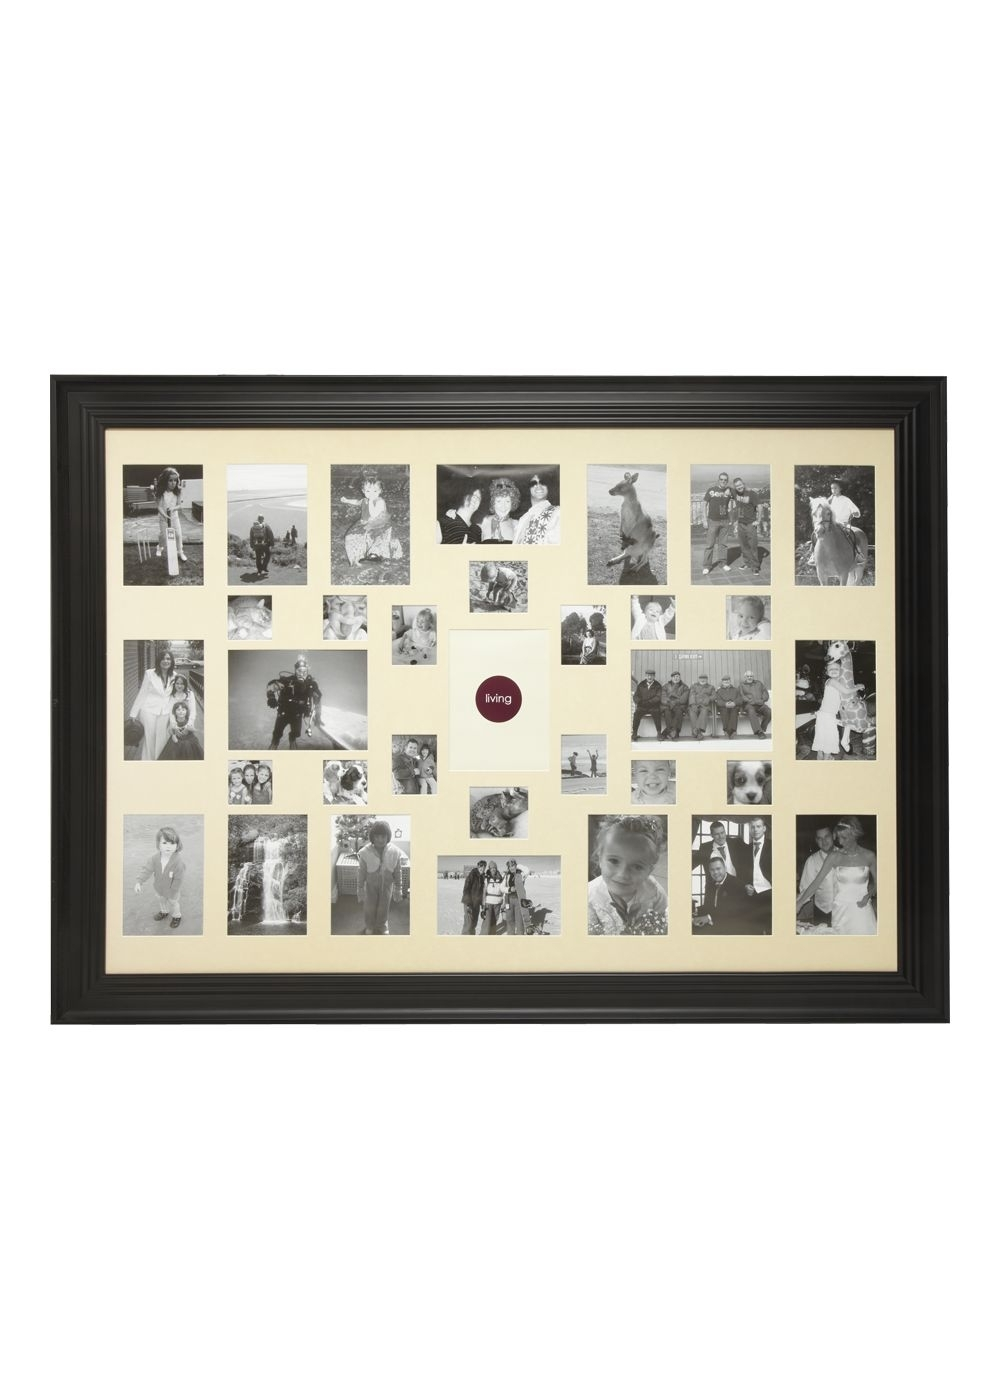 Matalan – Large Collage Frame #matalanmostwanted @matalan | Home Regarding 2018 Matalan Canvas Wall Art (View 8 of 15)